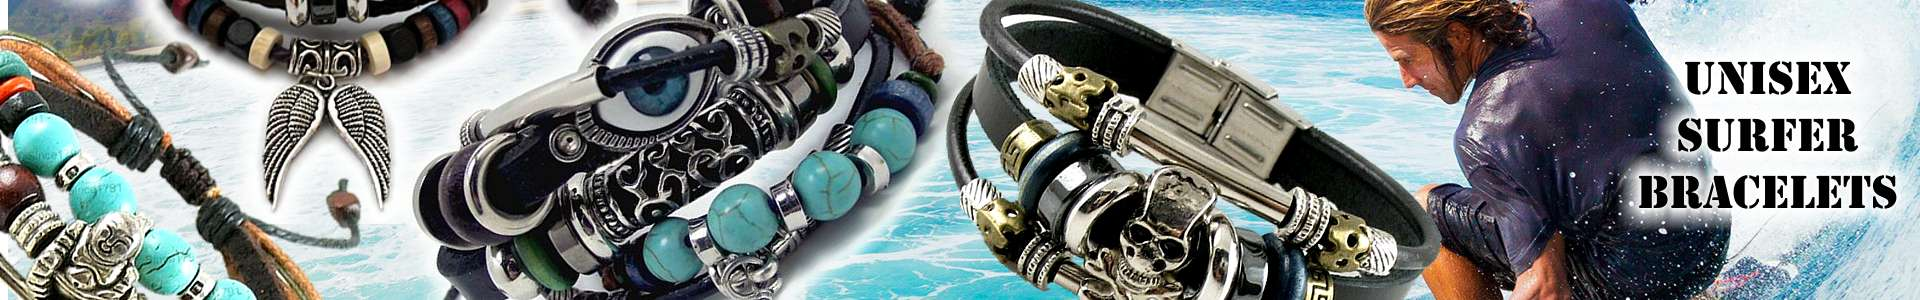 Surfer bracelets for Men